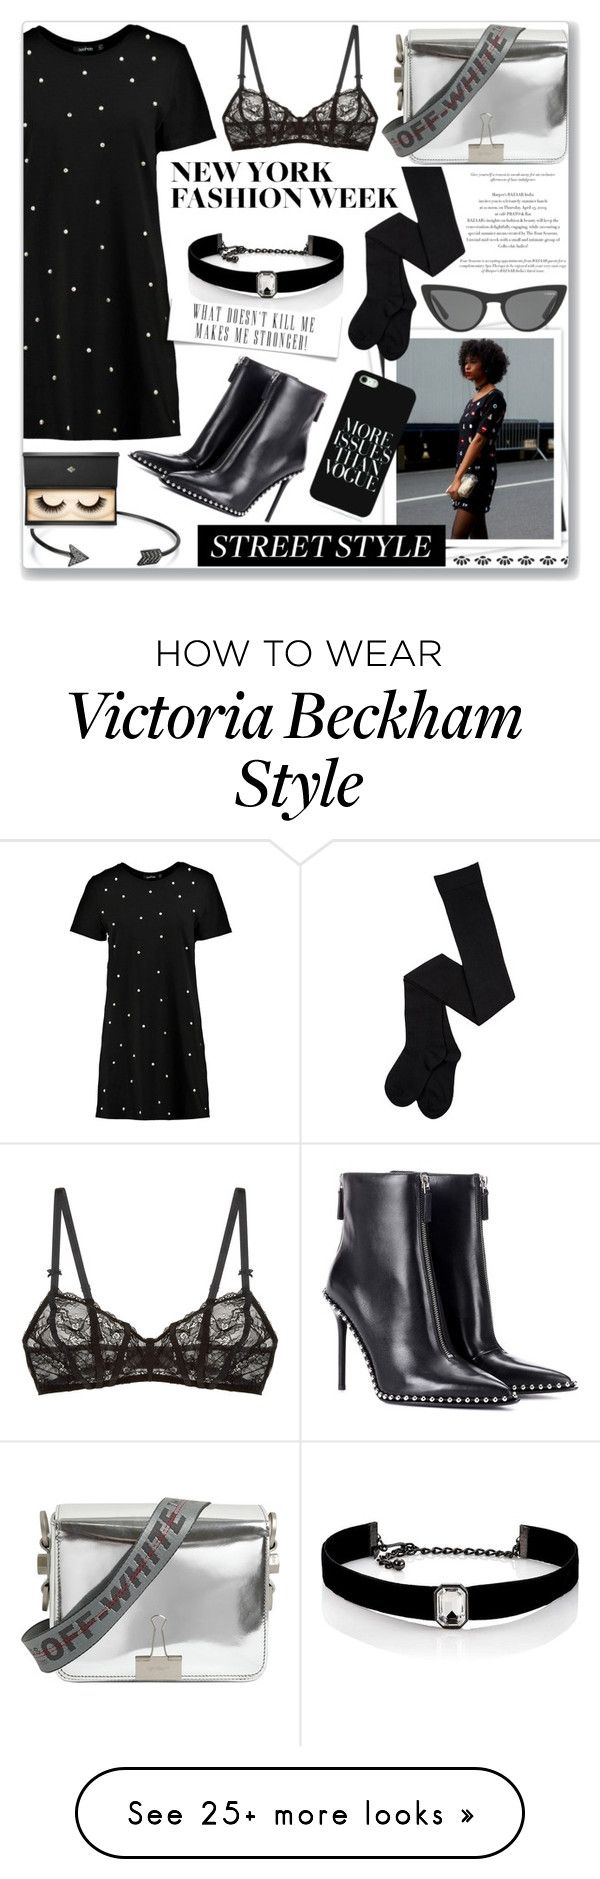 """""""Snap It - NYFW Street Style: 13/09/17"""" by pinky-chocolatte on Polyvore featuring Boohoo, GALA, Bling Jewelry, Off-White, Kenneth Jay Lane, Alexander Wang, Lash Star Beauty, Free People, Victoria, Victoria Beckham and StreetStyle"""